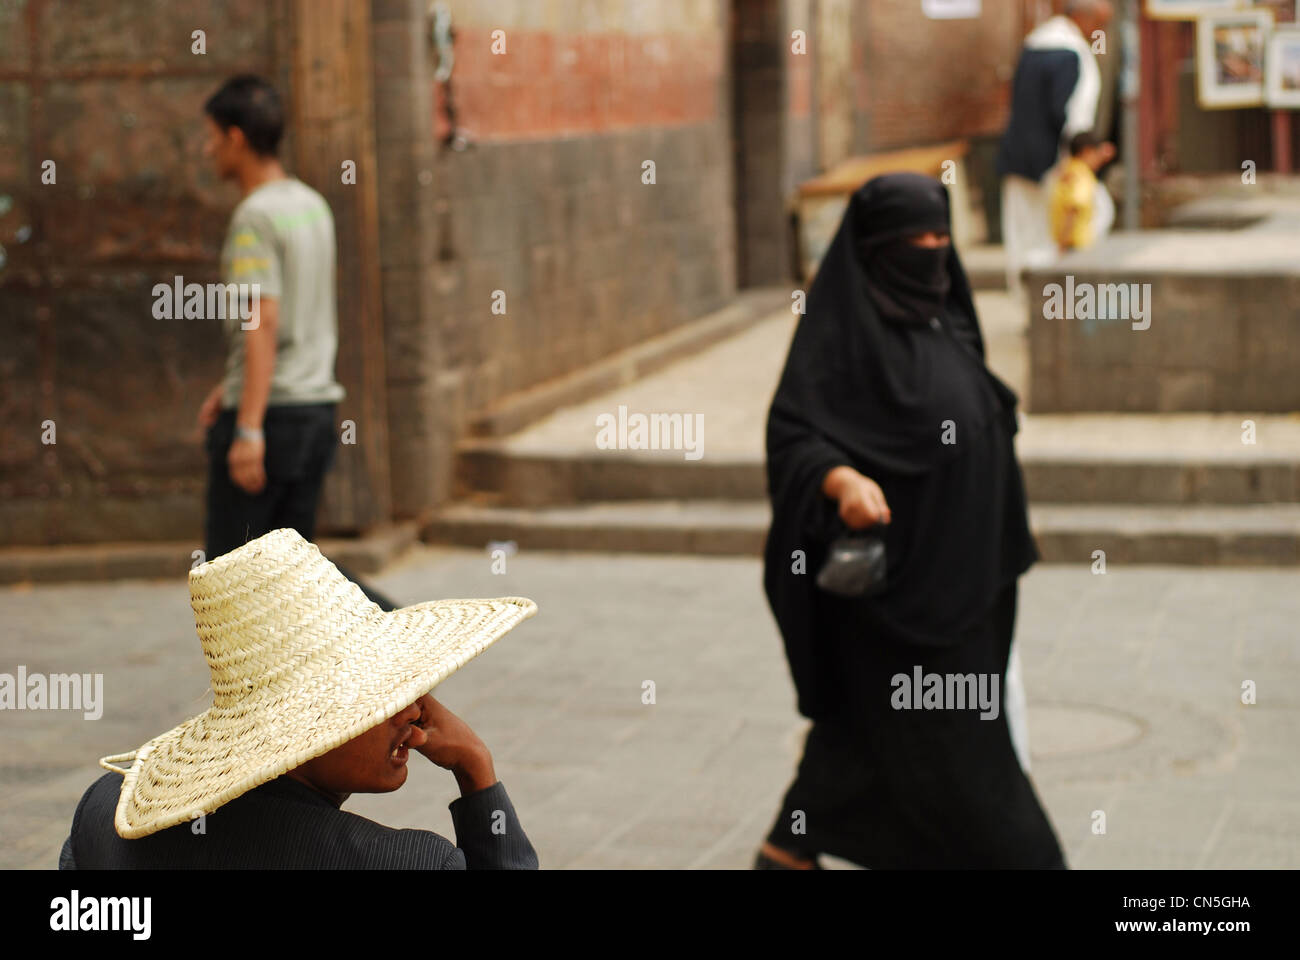 Yemen, Sanaa, view of a person wearing hat while others walking - Stock Image